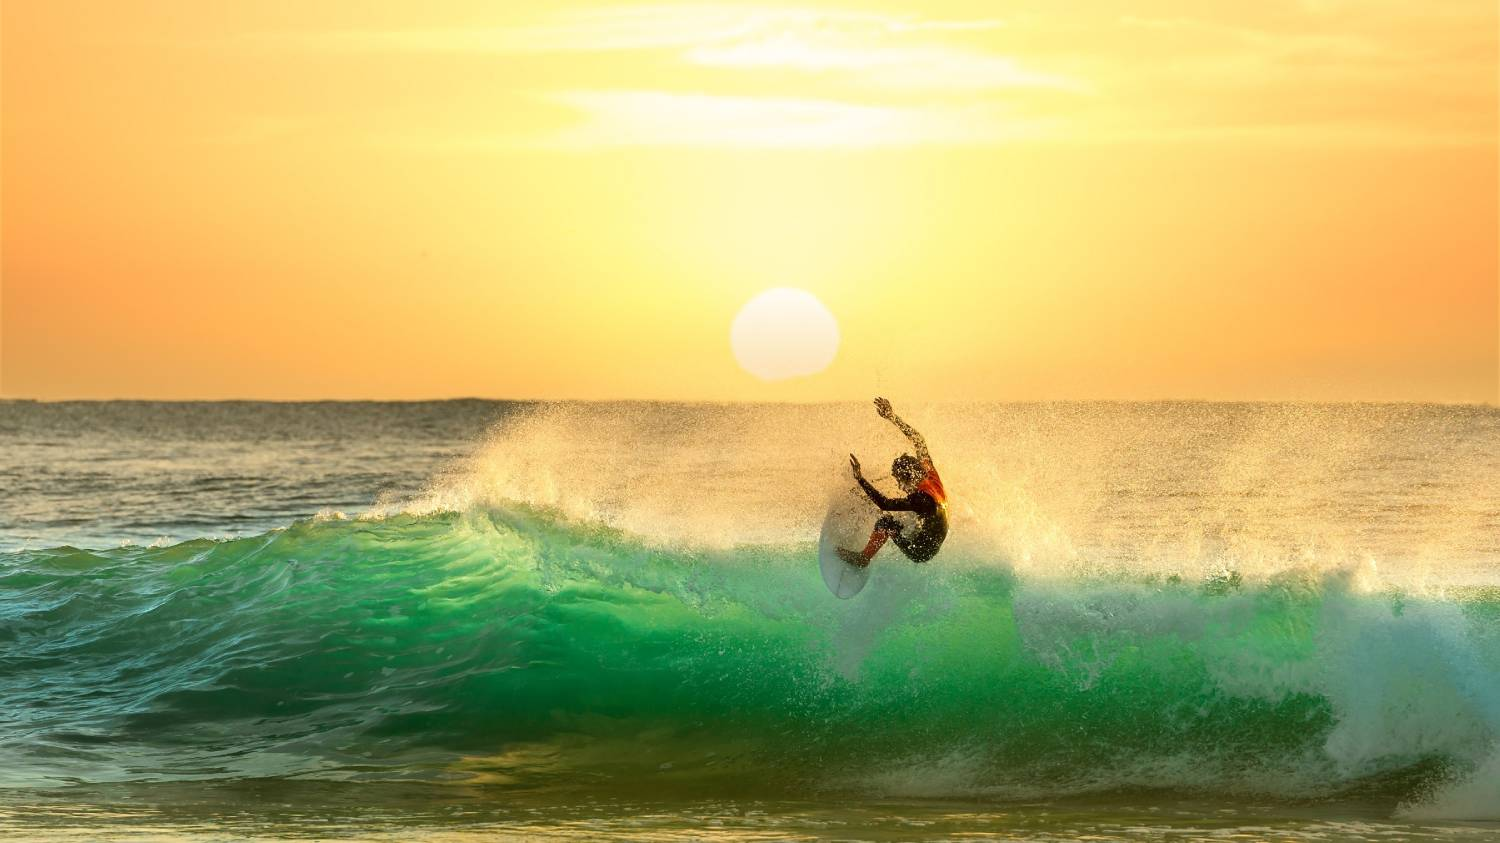 Gold Coast - The Best Places To Visit In Australia